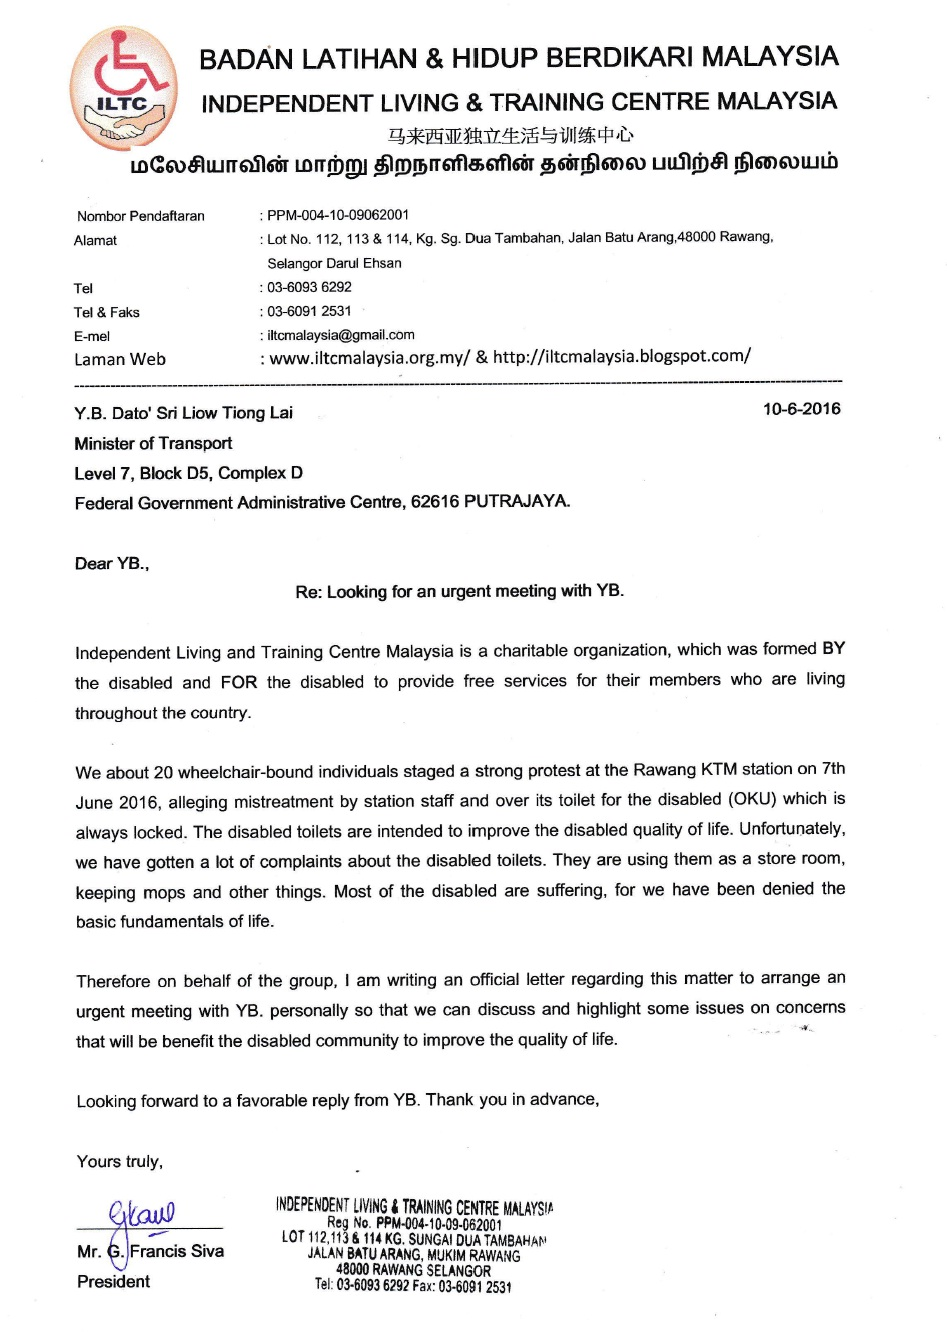 Iltc malaysia working to create a world as it should bew herewith i have attached an official letter seeking for an urgent meeting with yb thecheapjerseys Images